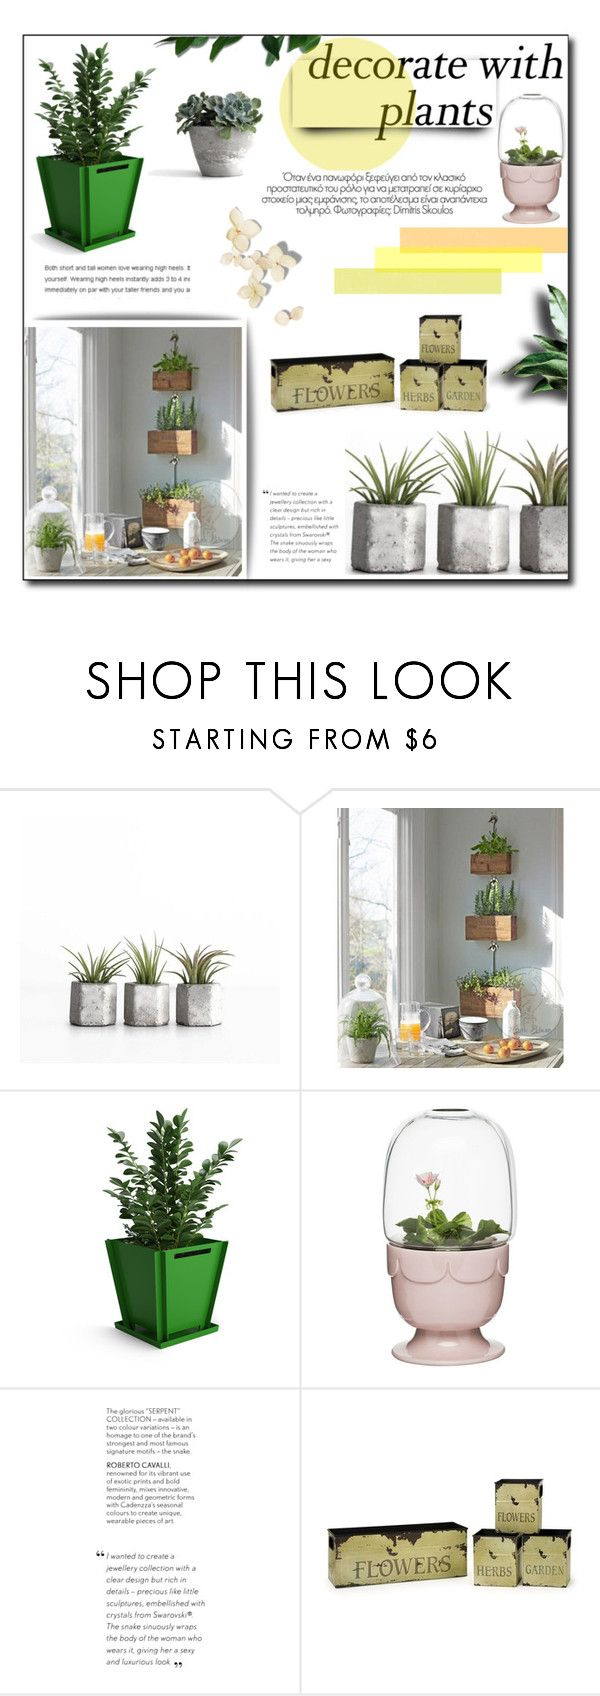 """Decorate With Plants"" by achernar ❤ liked on Polyvore featuring interior, interiors, interior design, home, home decor, interior decorating, Sagaform, plants and planters"